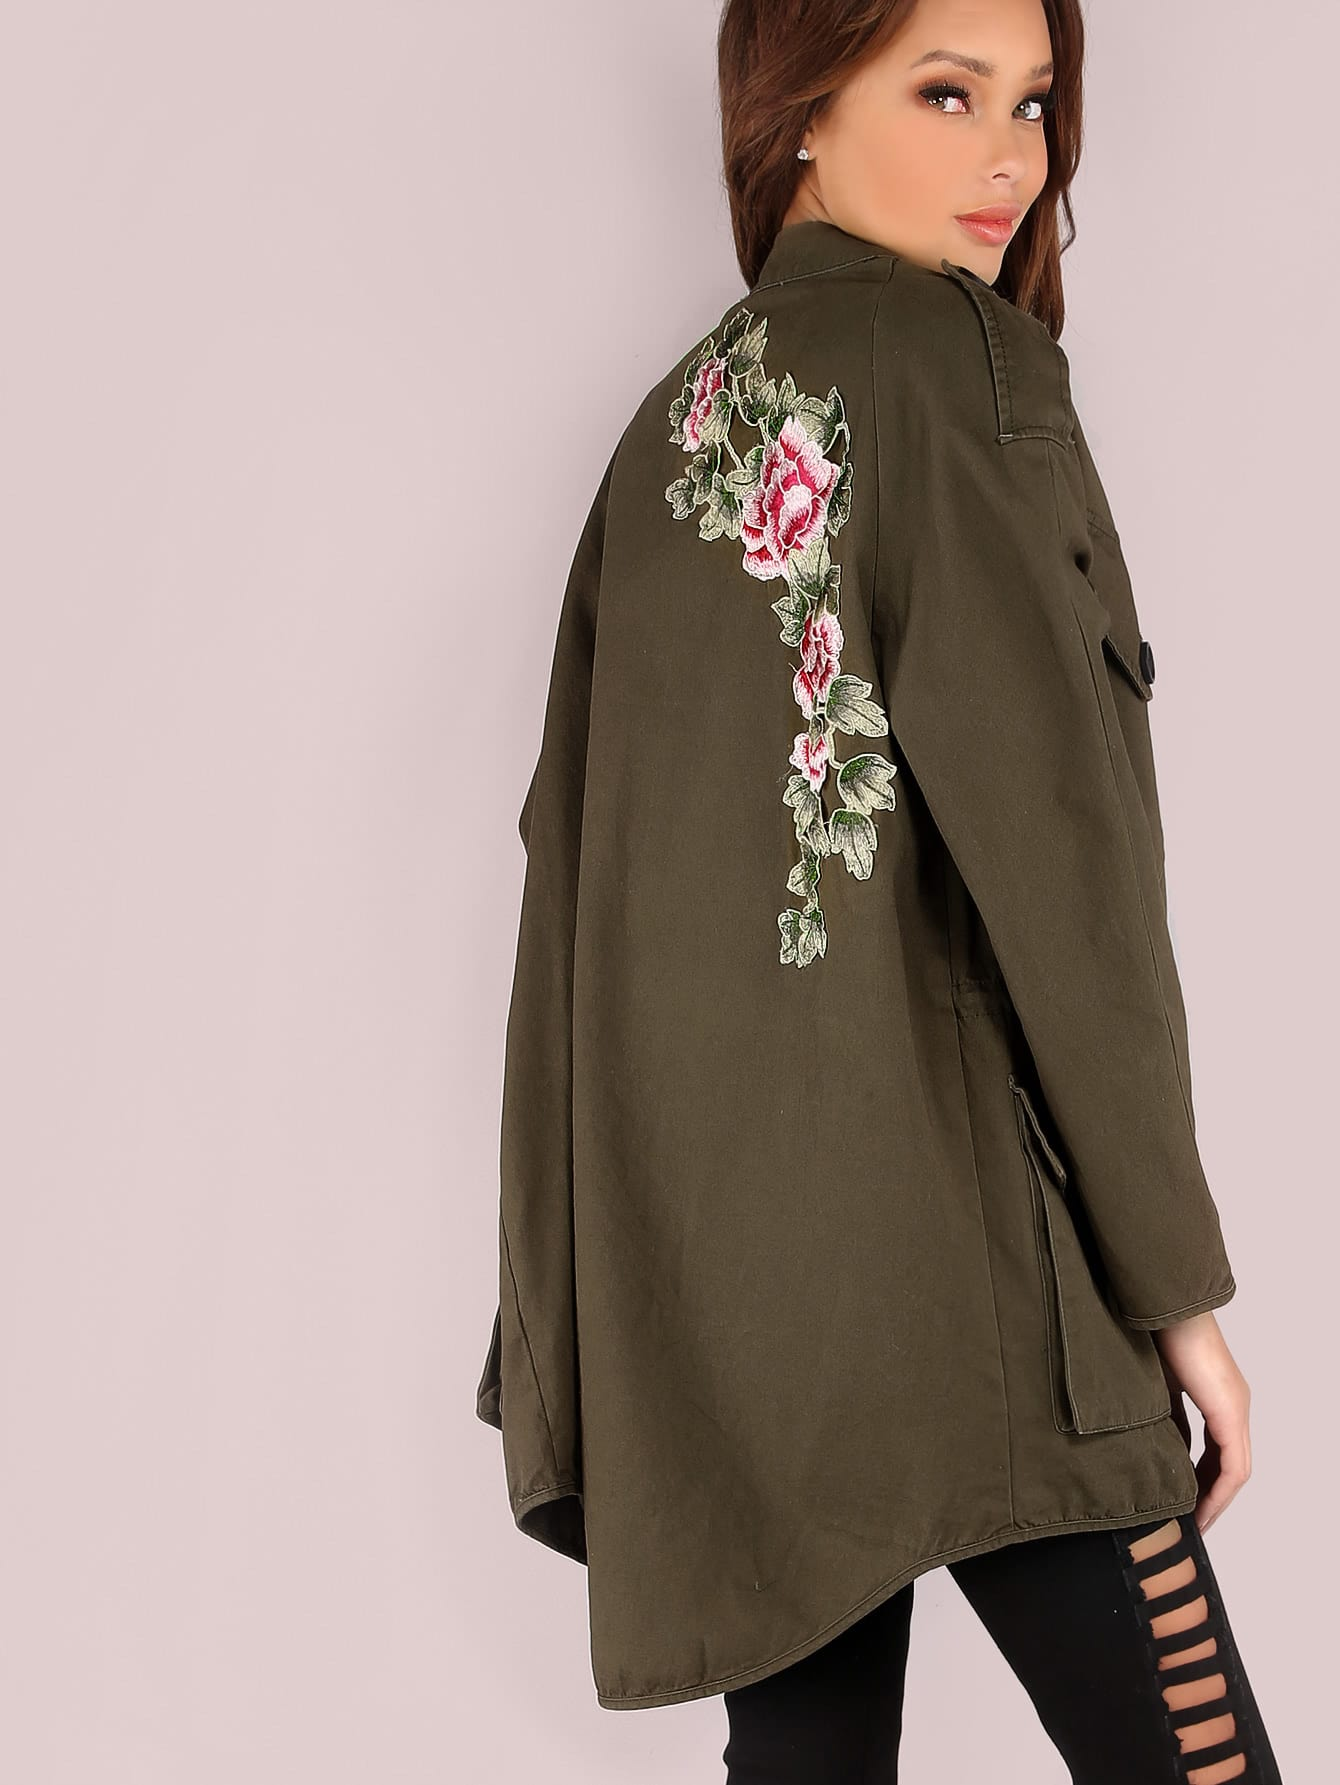 Oversized embroidered hoodless utility jacket shein